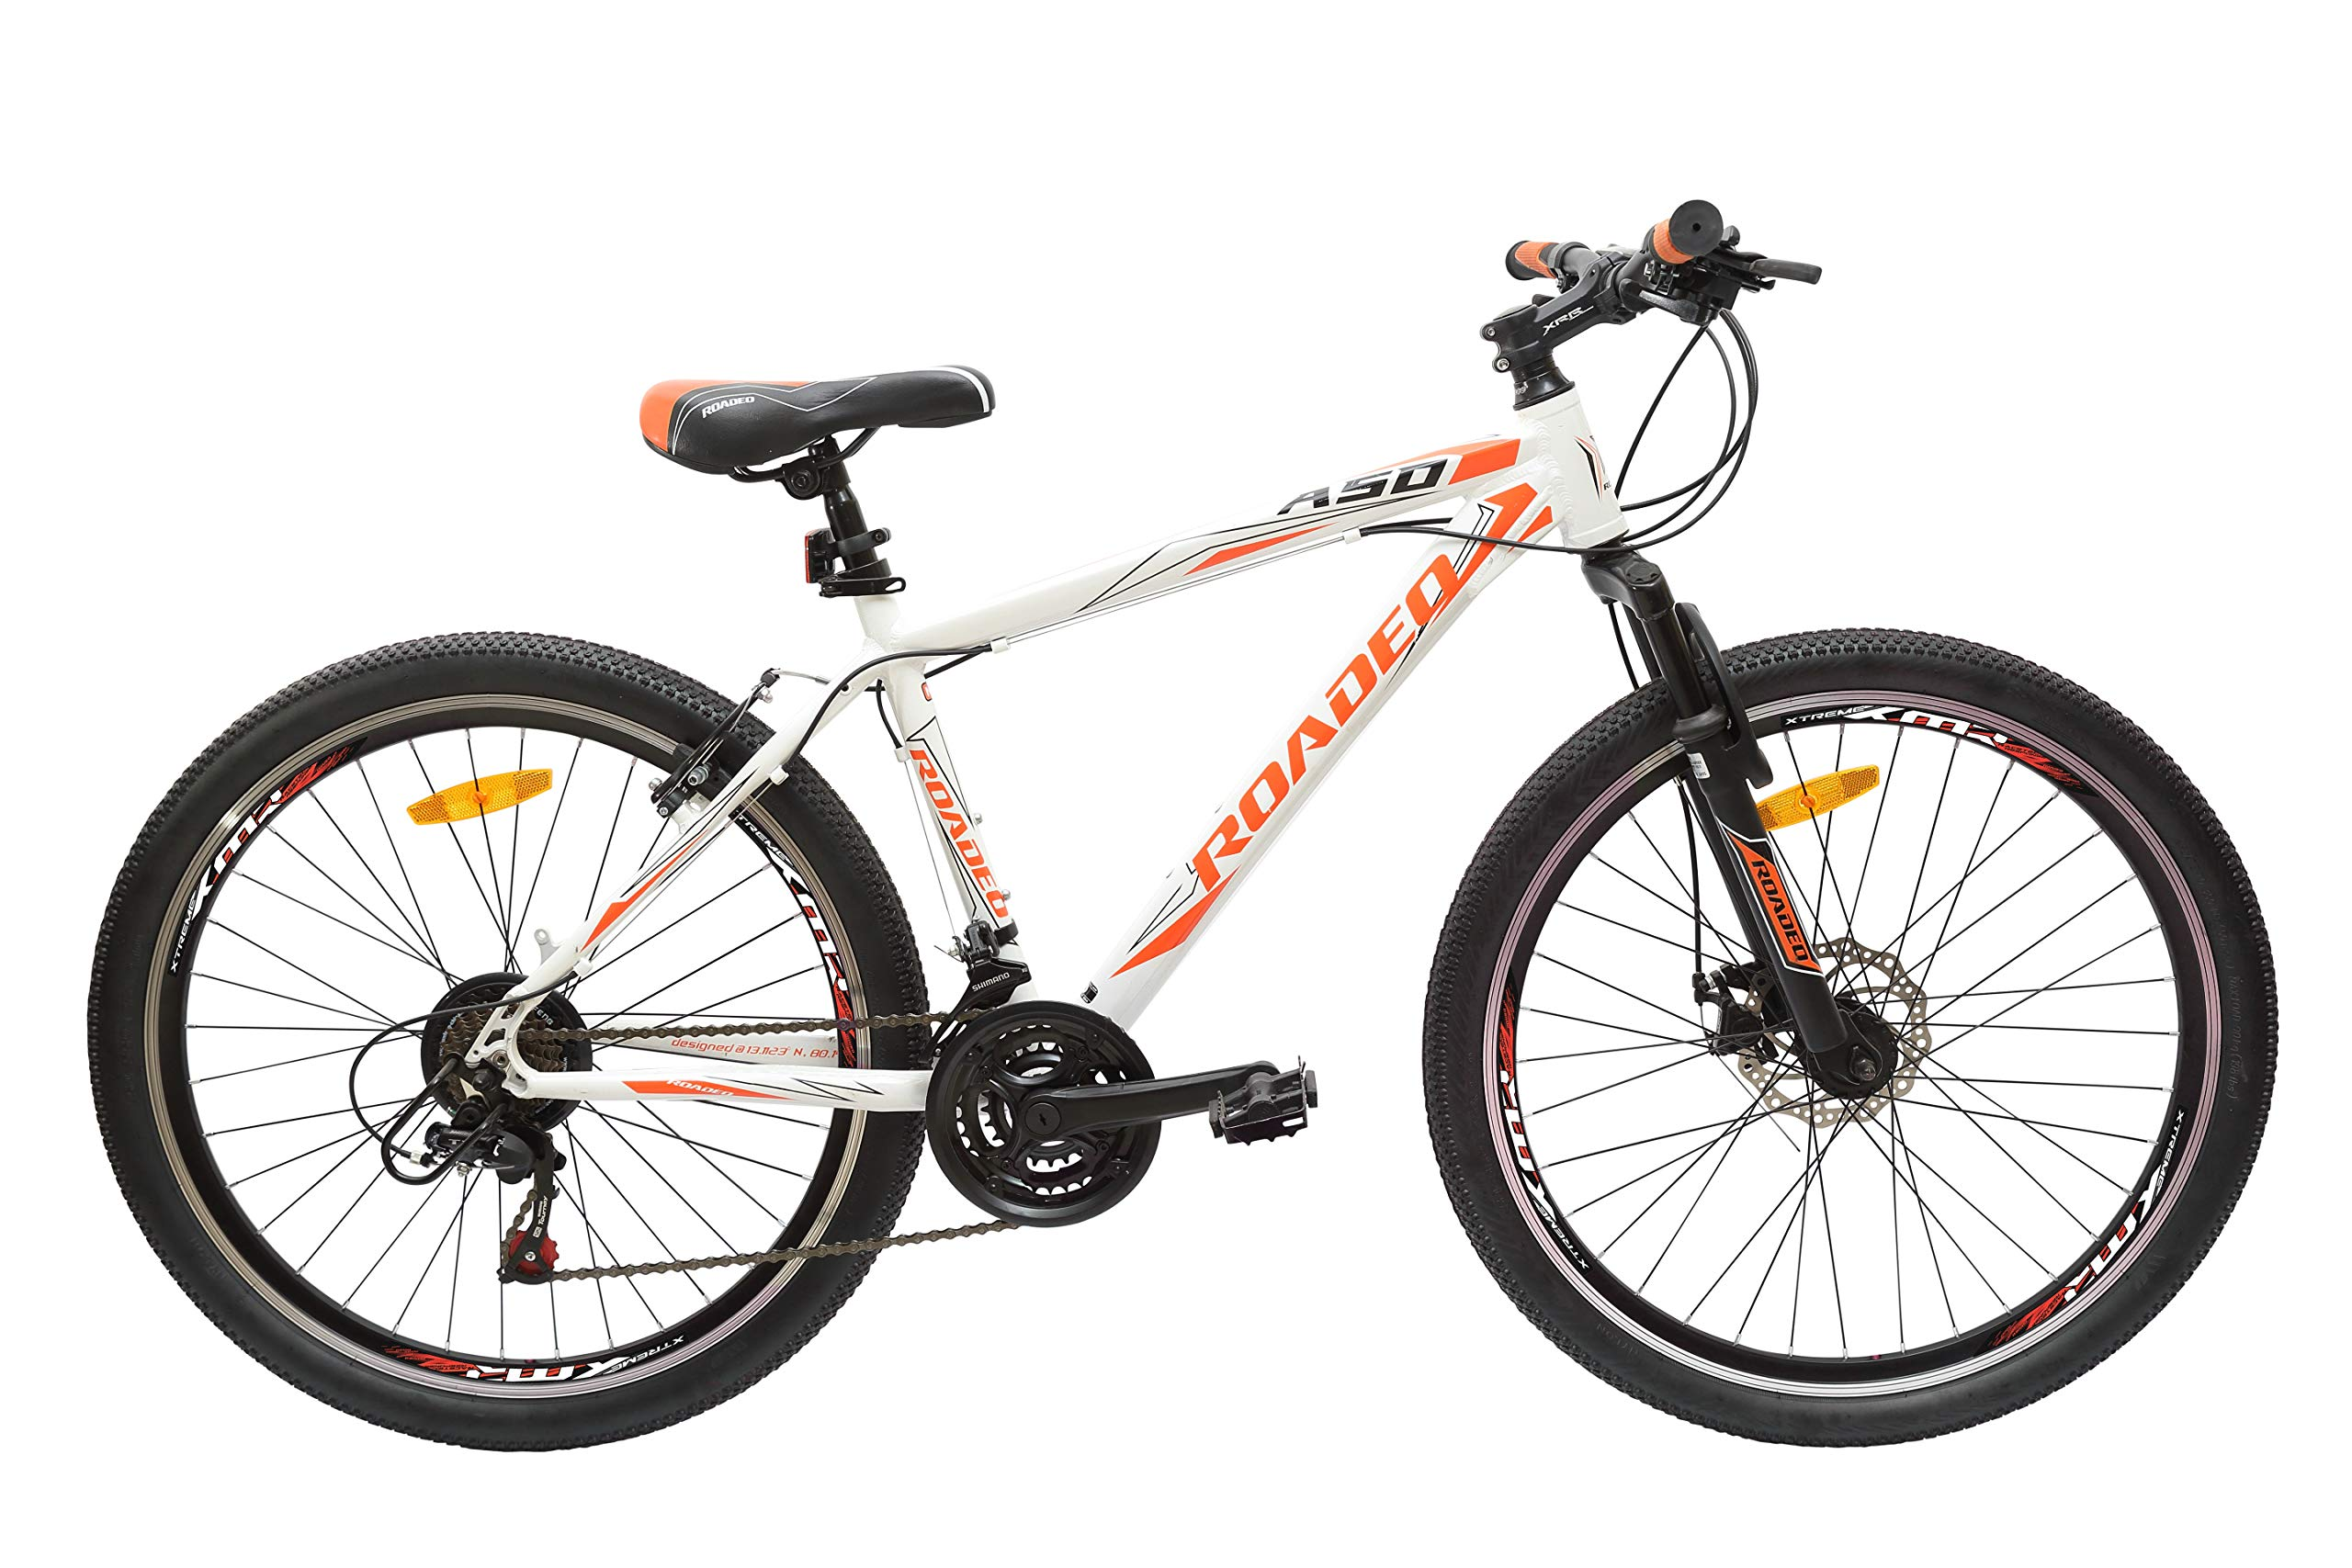 Hercules Roadeo A50 26T 21 Speed Premium Geared Cycle(Stone White) product image